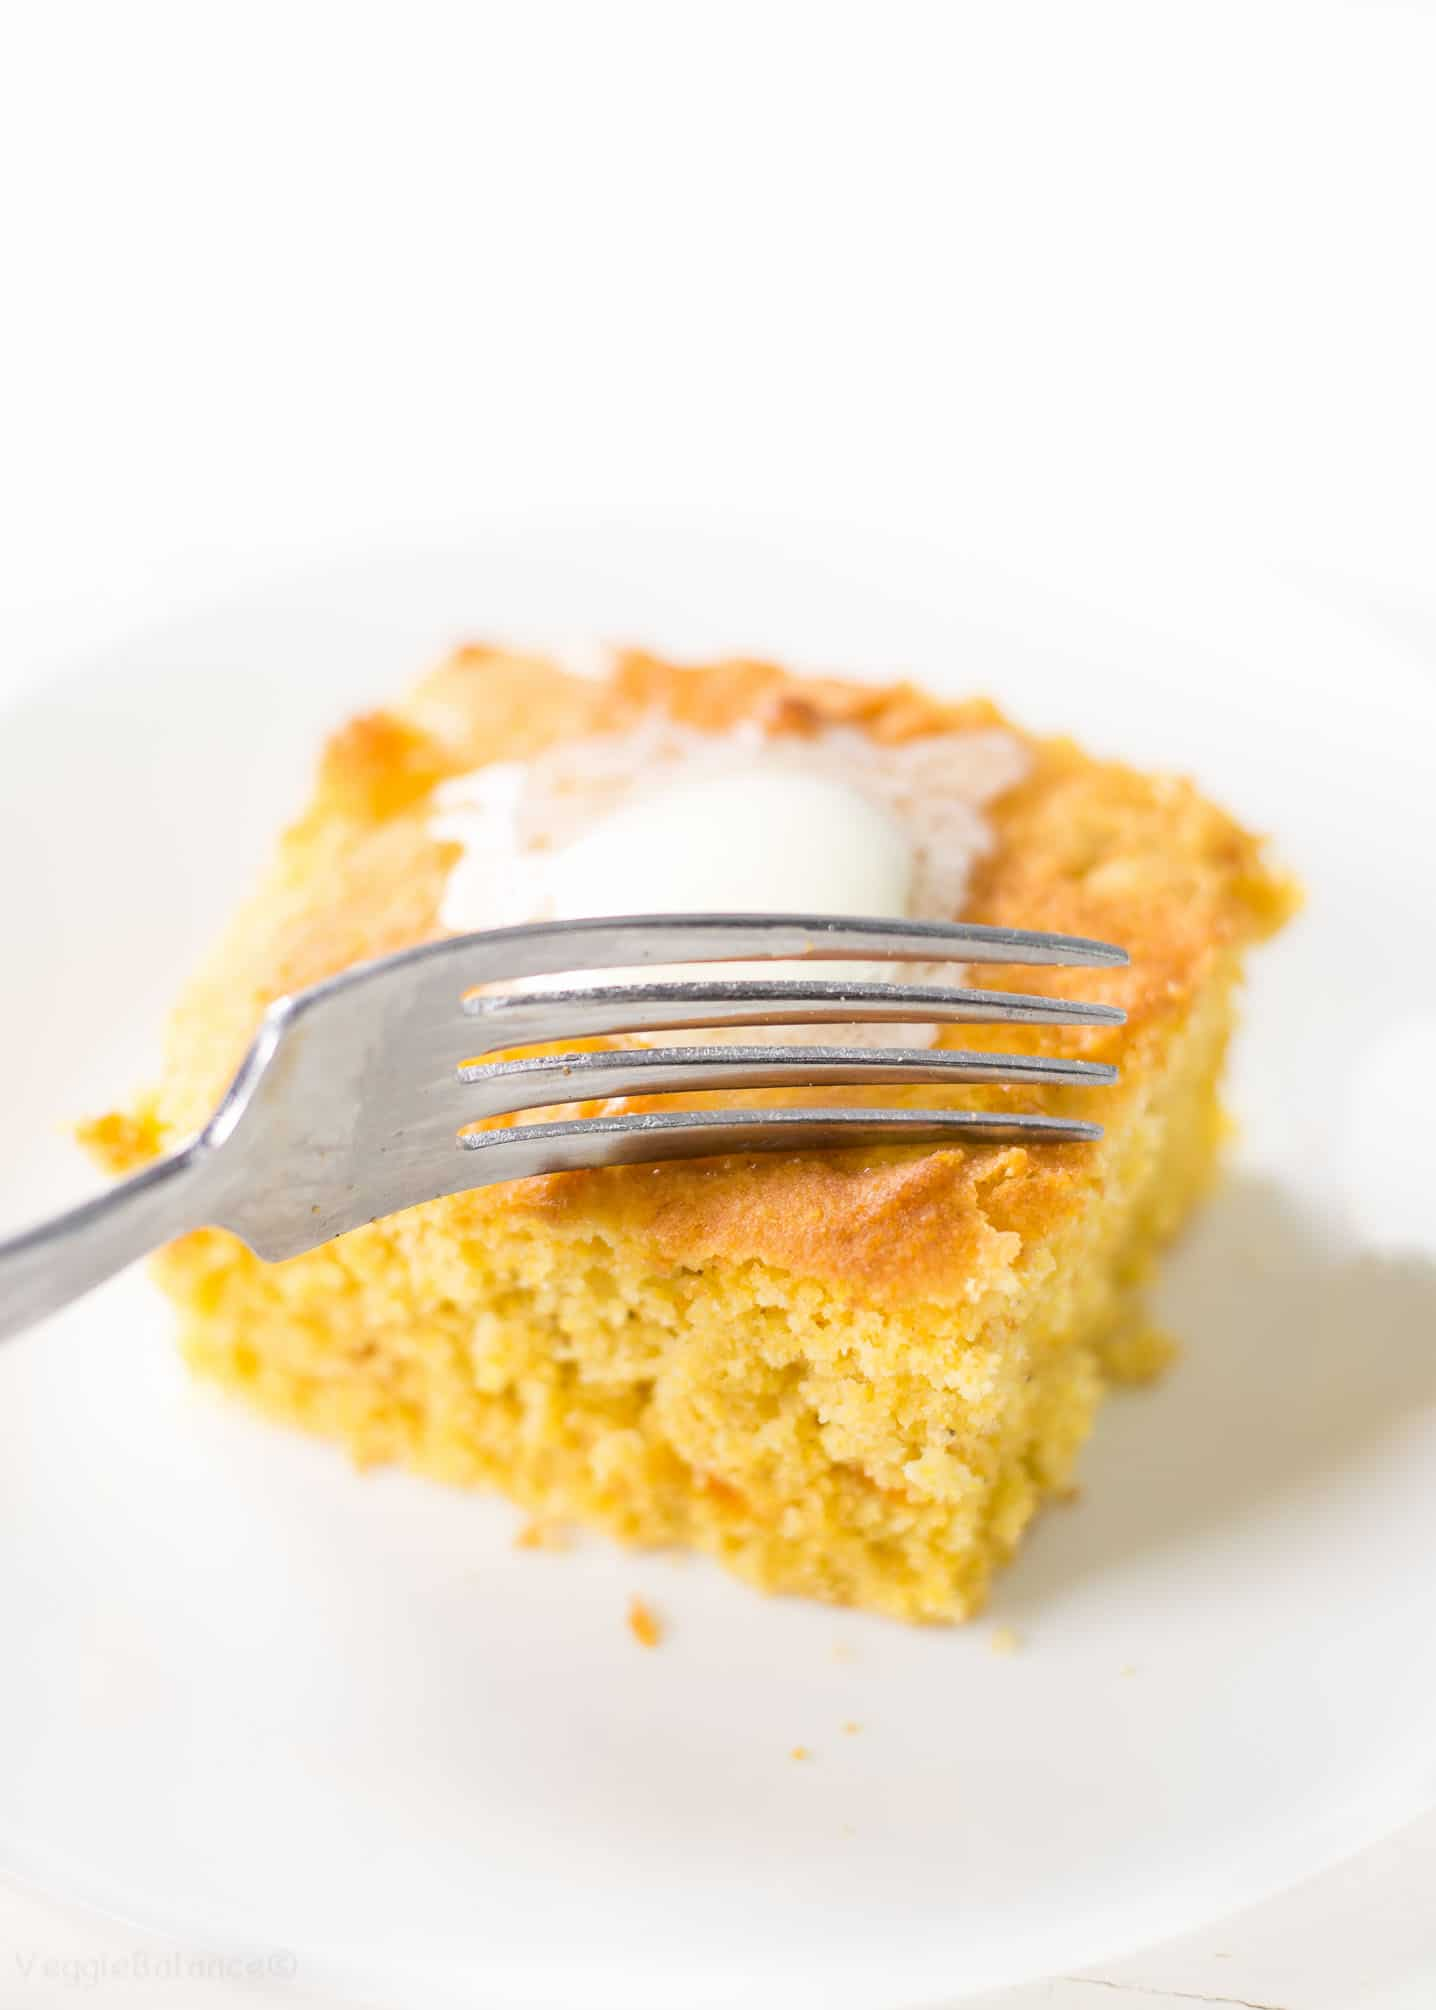 Gluten Free Cornbread Recipe (Sweet Potato Cornbread)